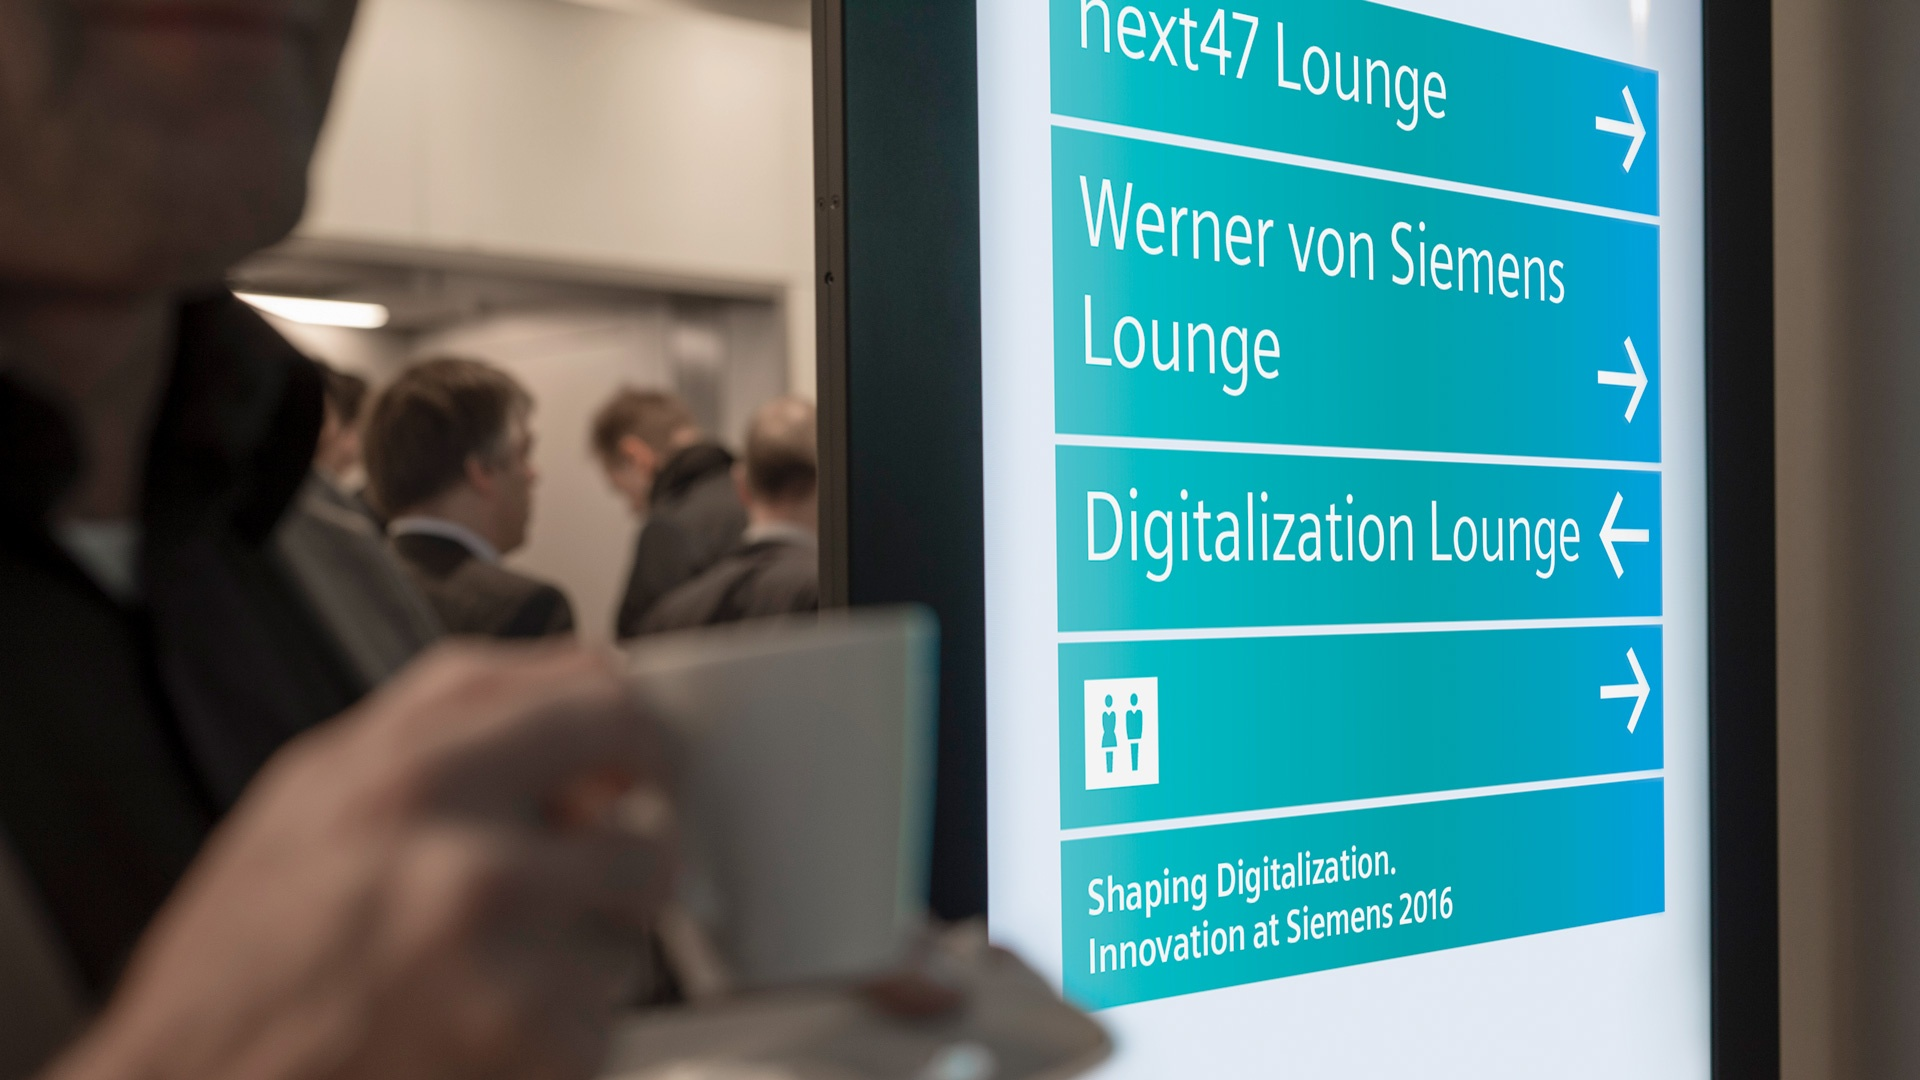 Innovation at Siemens 2016